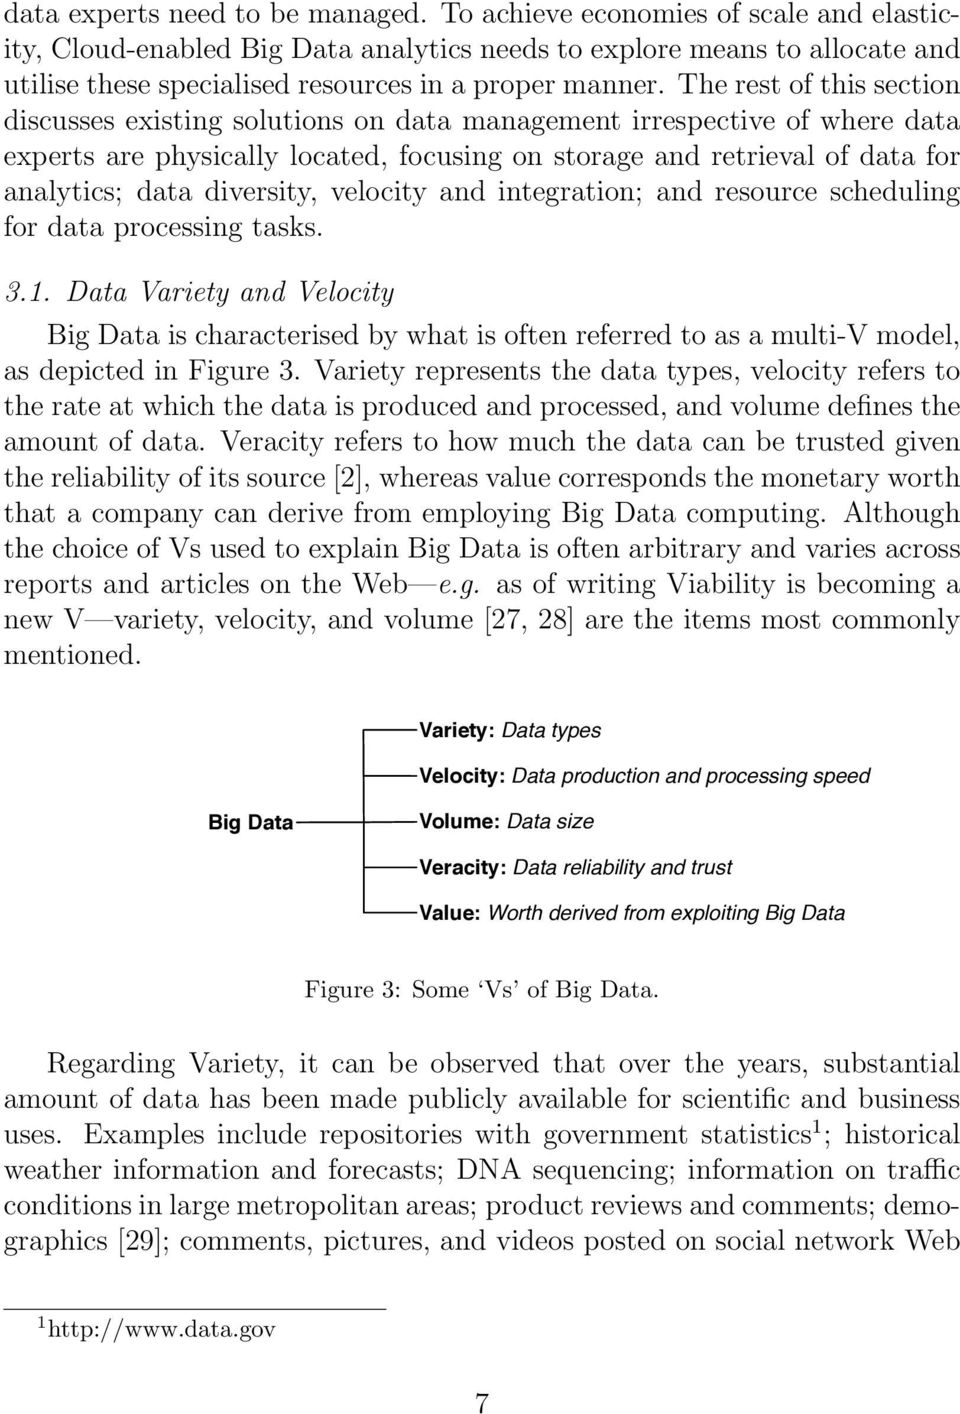 The rest of this section discusses existing solutions on data management irrespective of where data experts are physically located, focusing on storage and retrieval of data for analytics; data